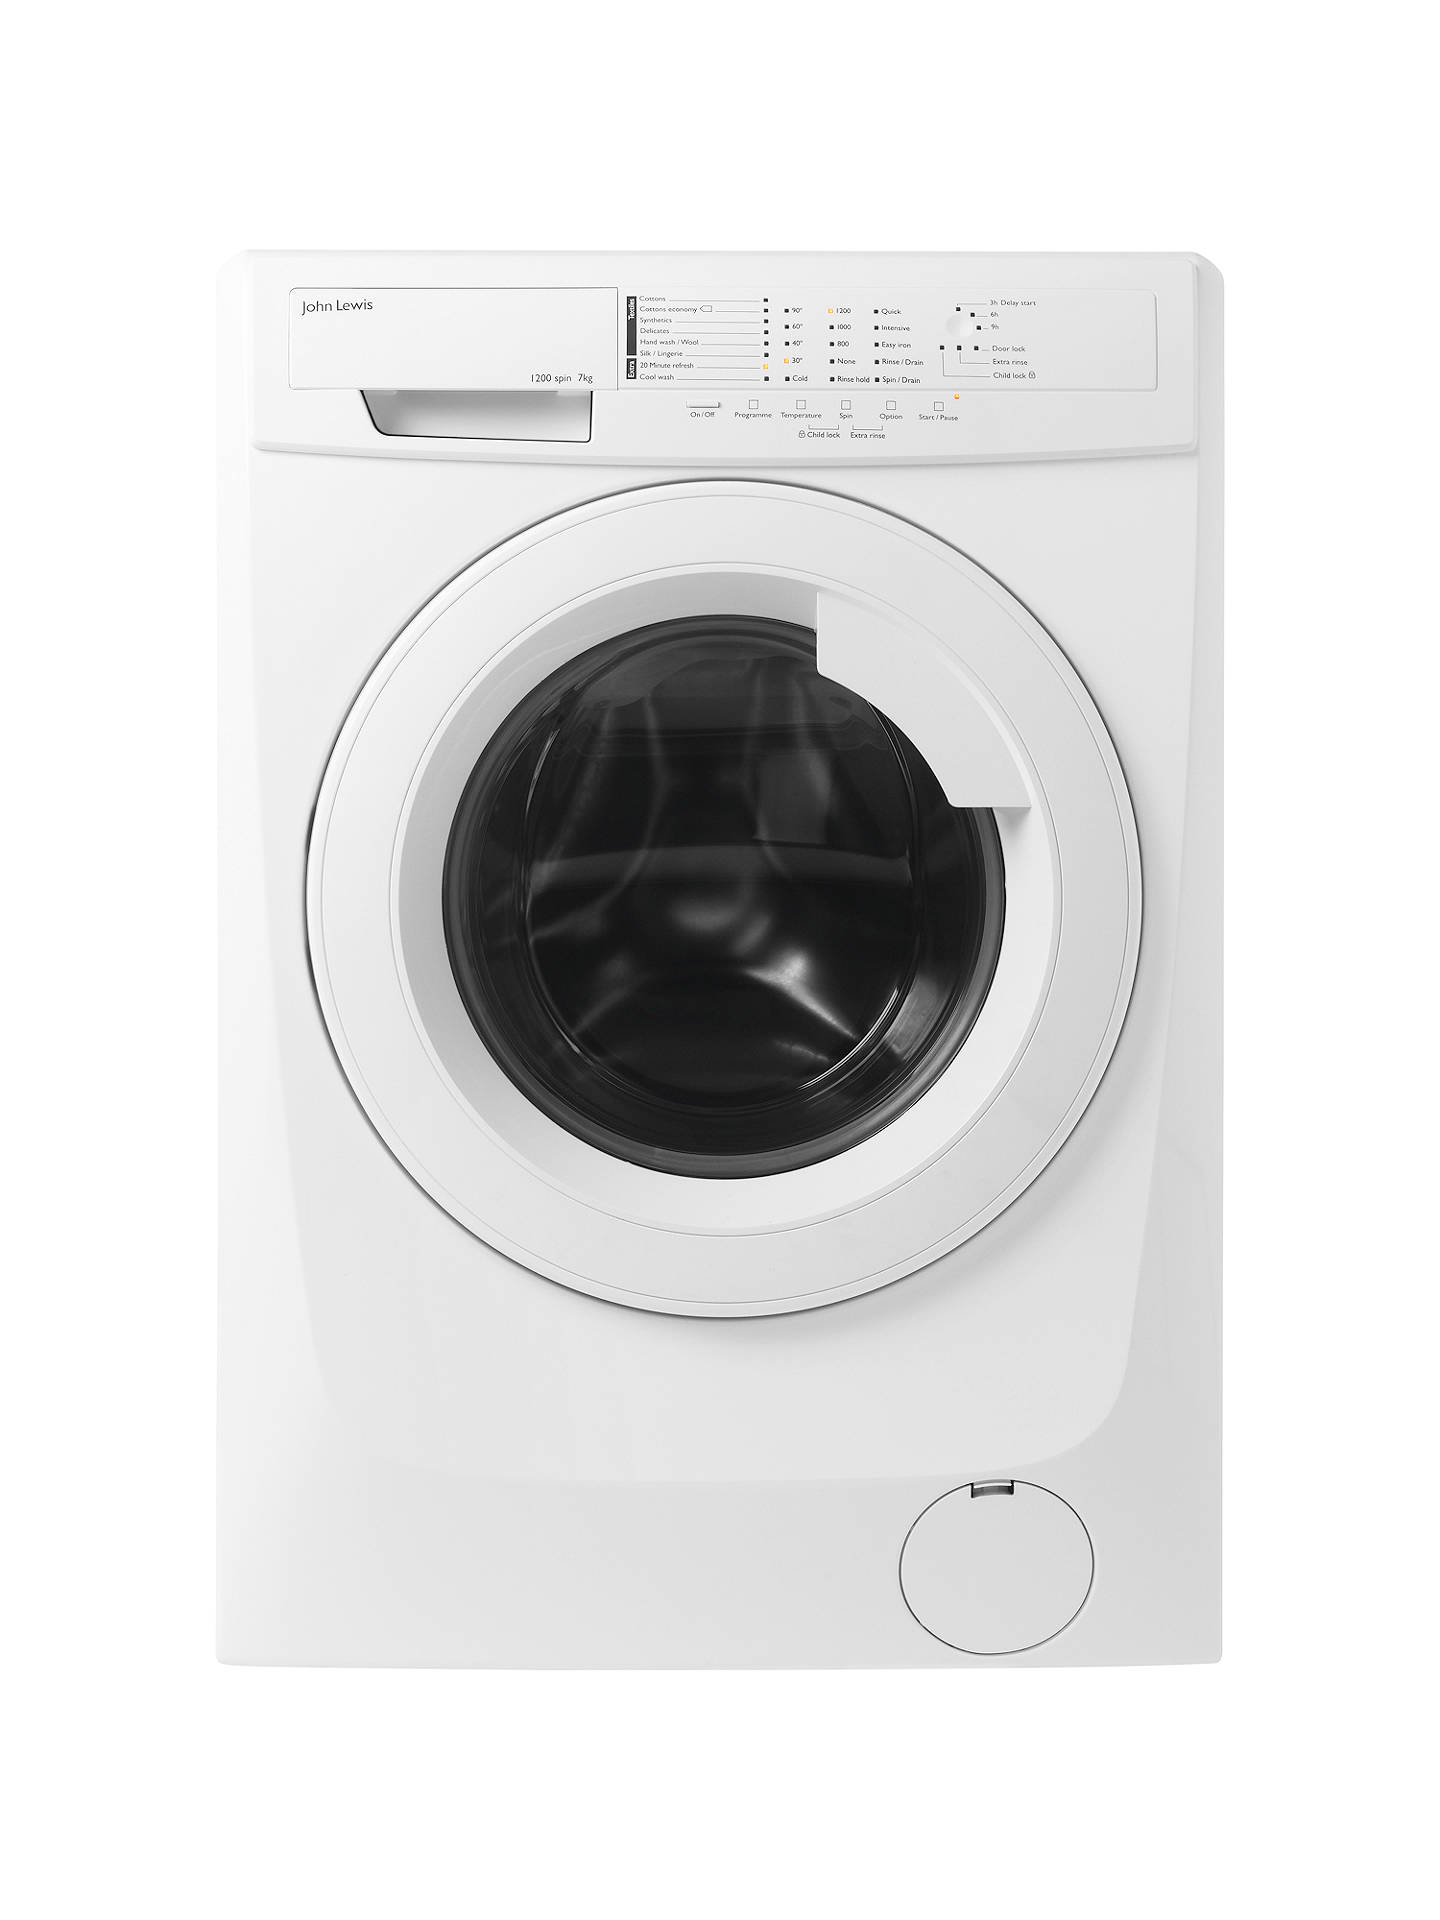 c470cd3378f Buy John Lewis   Partners JLWM1206 Freestanding Washing Machine